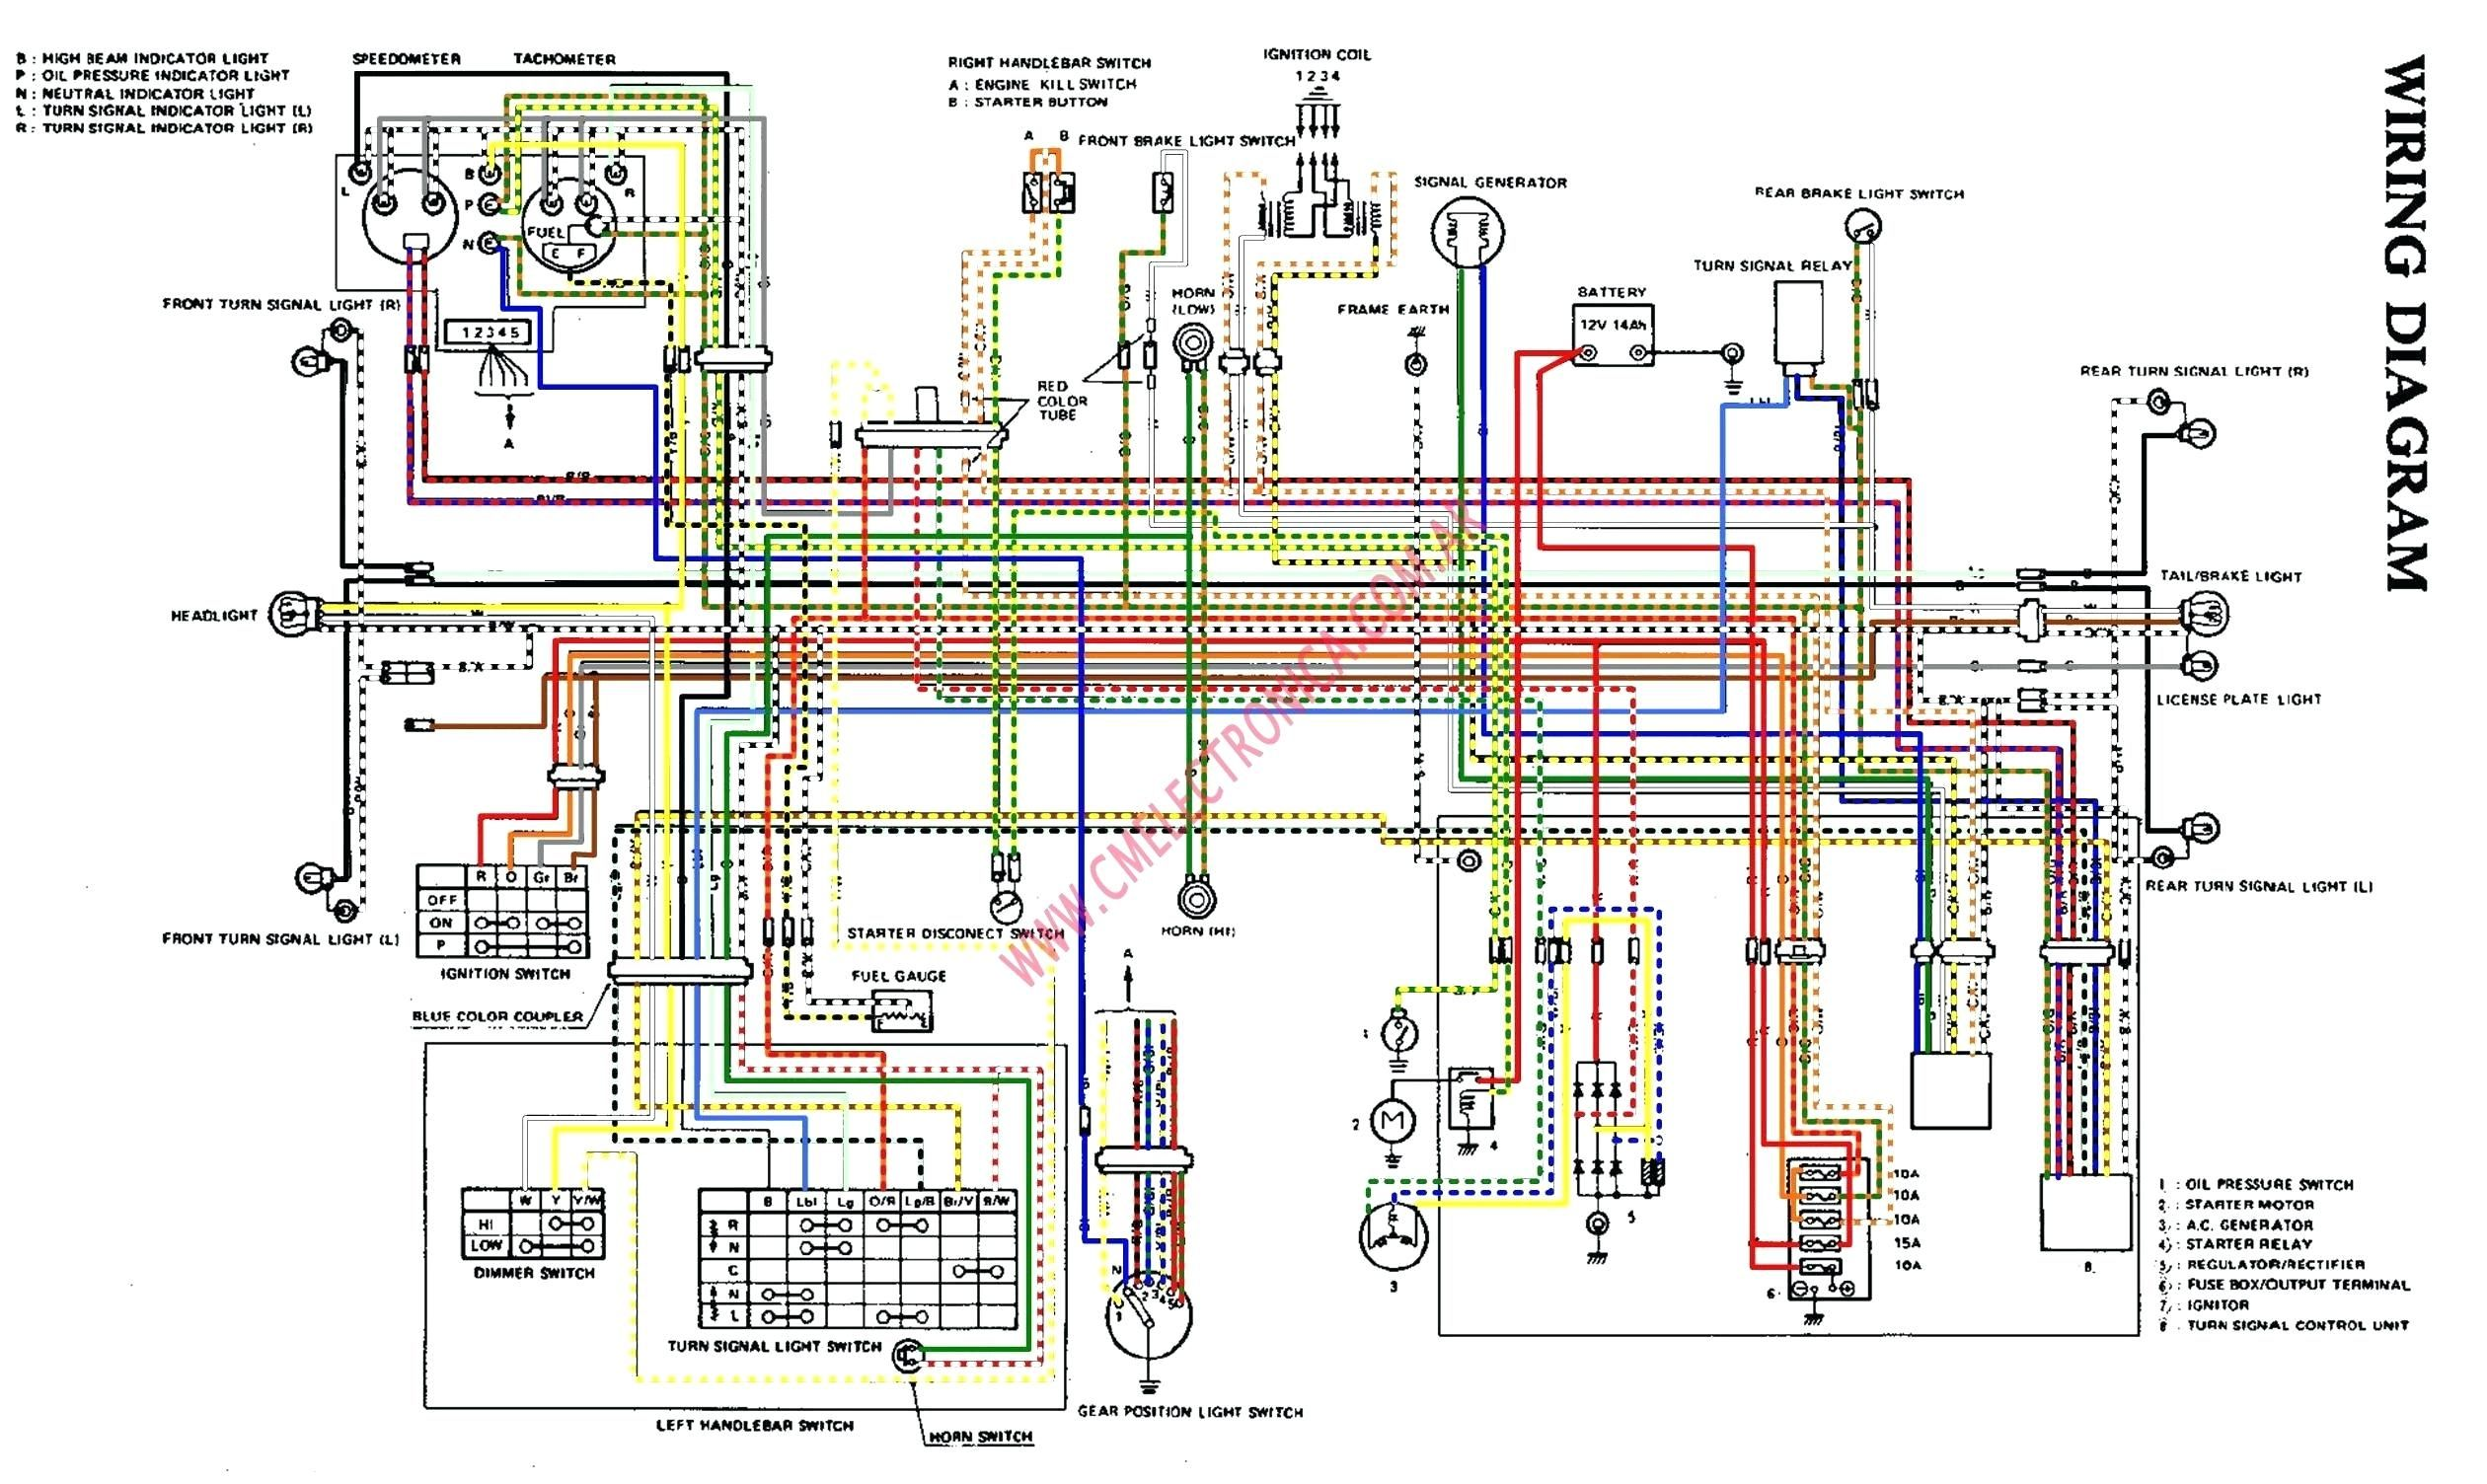 Suzuki Gs550 Wiring Diagram Volovets Info Motorcycle Wiring Trailer Wiring Diagram Wire